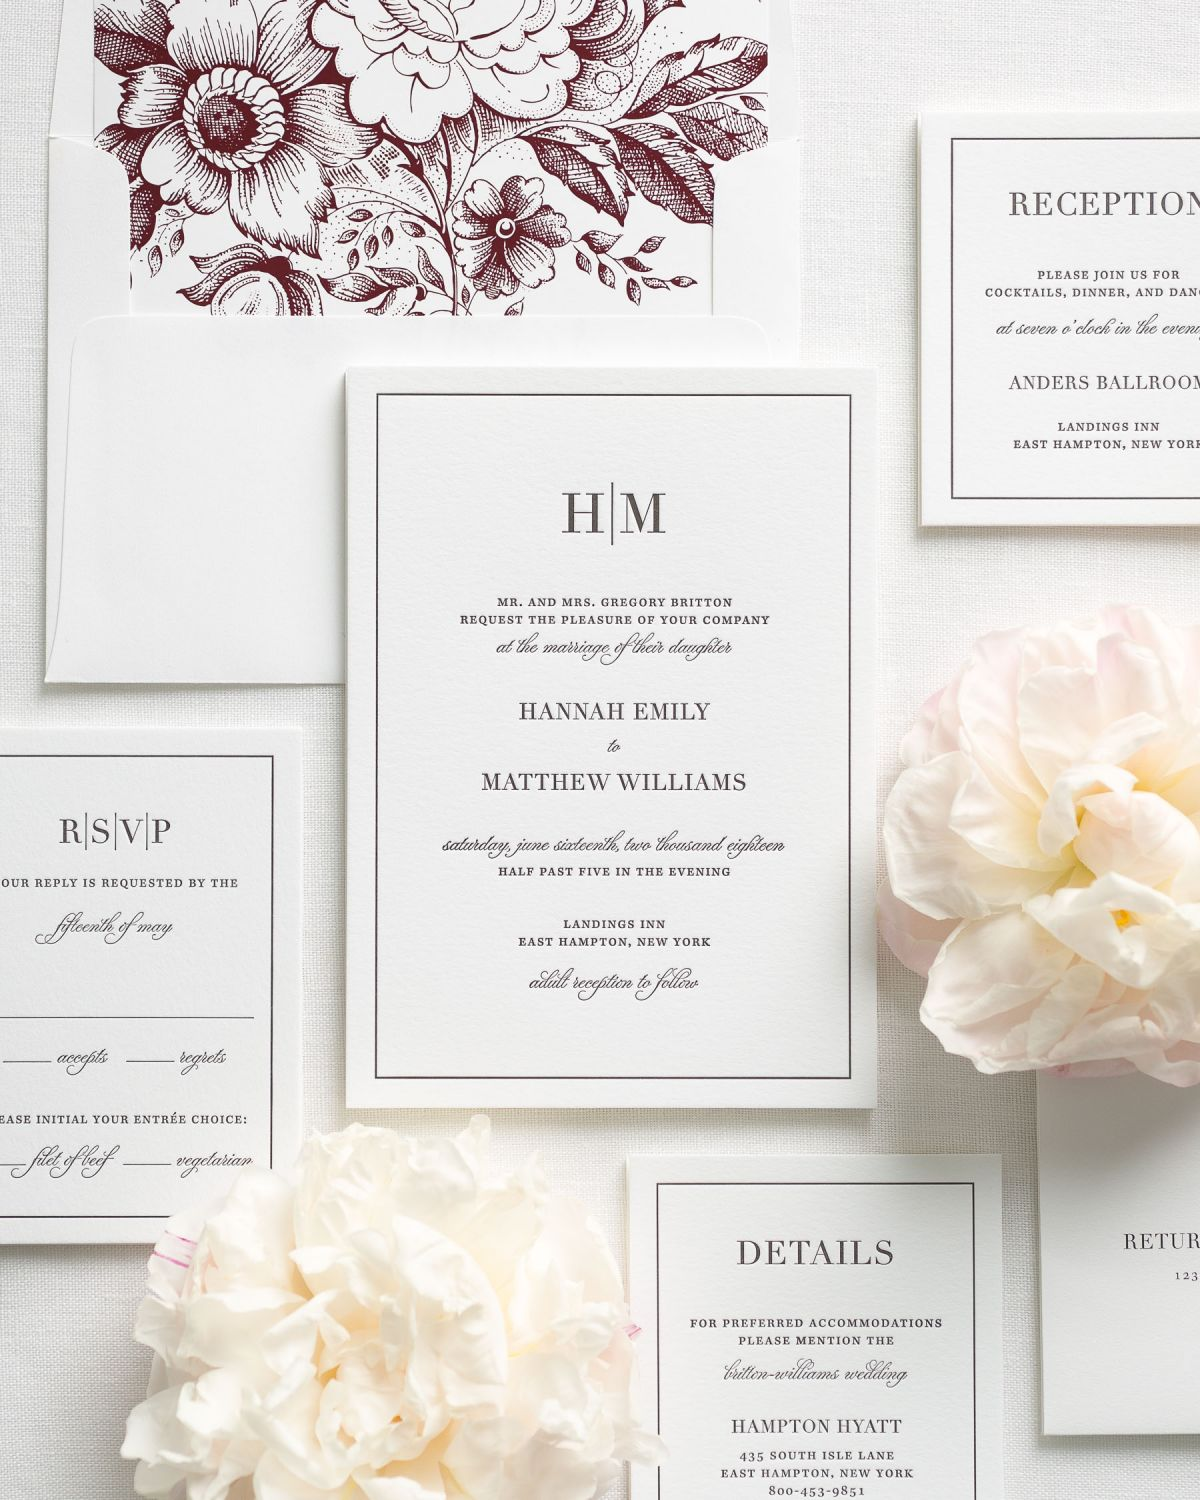 bordered and sophisticated letterpress wedding invitations with a garden rose envelope liner